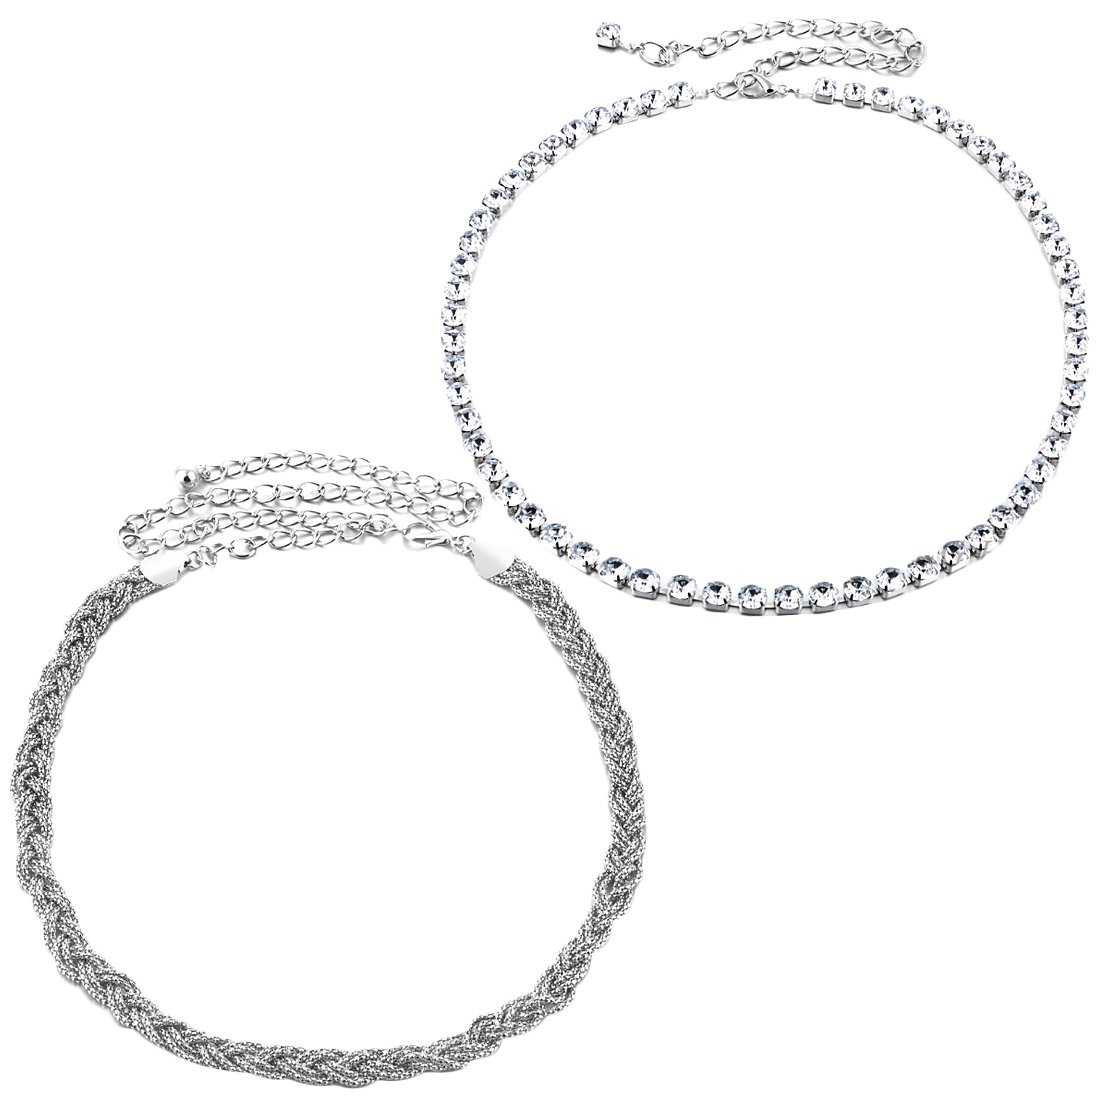 kilofly 2pc Women Elegant Silver Metal Thin Chain Clasp Skinny Belts Waist Bands AWA373set2